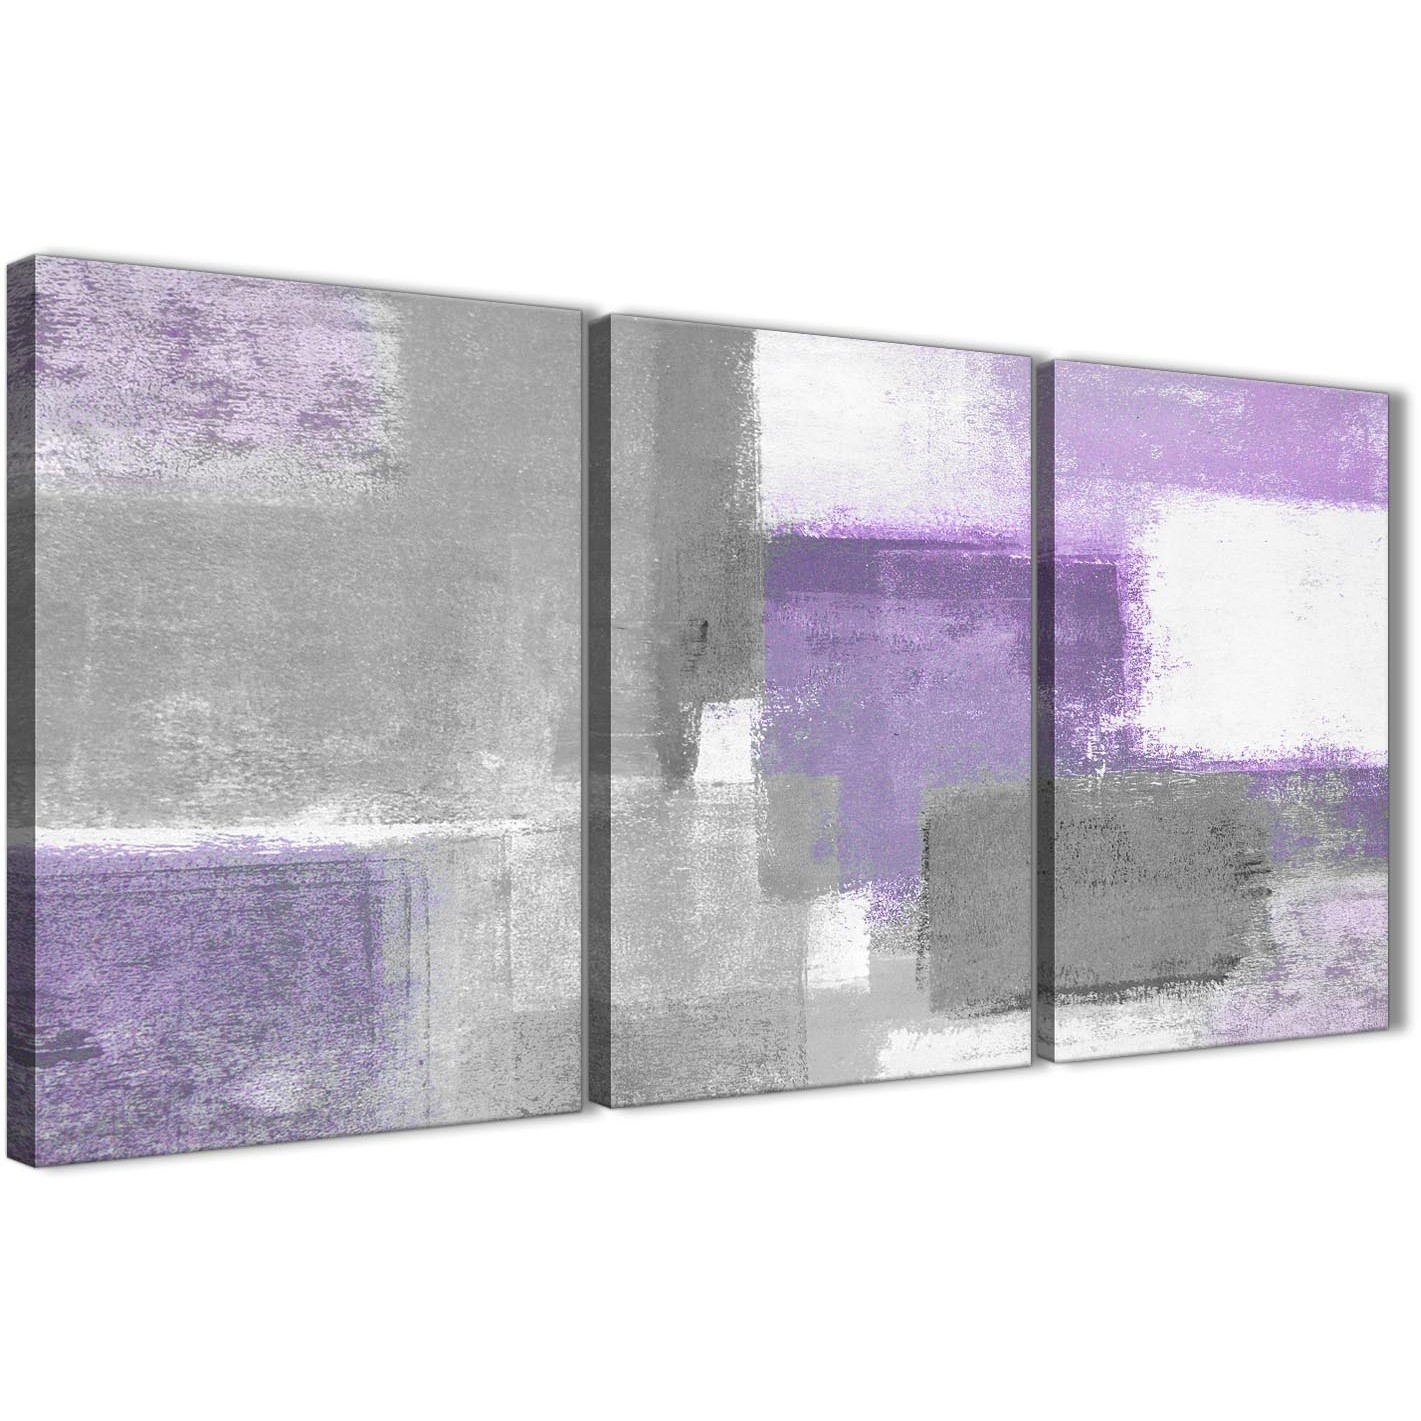 3 Piece Purple Grey Painting Kitchen Canvas Pictures Decor Throughout Purple And Grey Wall Art (Photo 9 of 20)